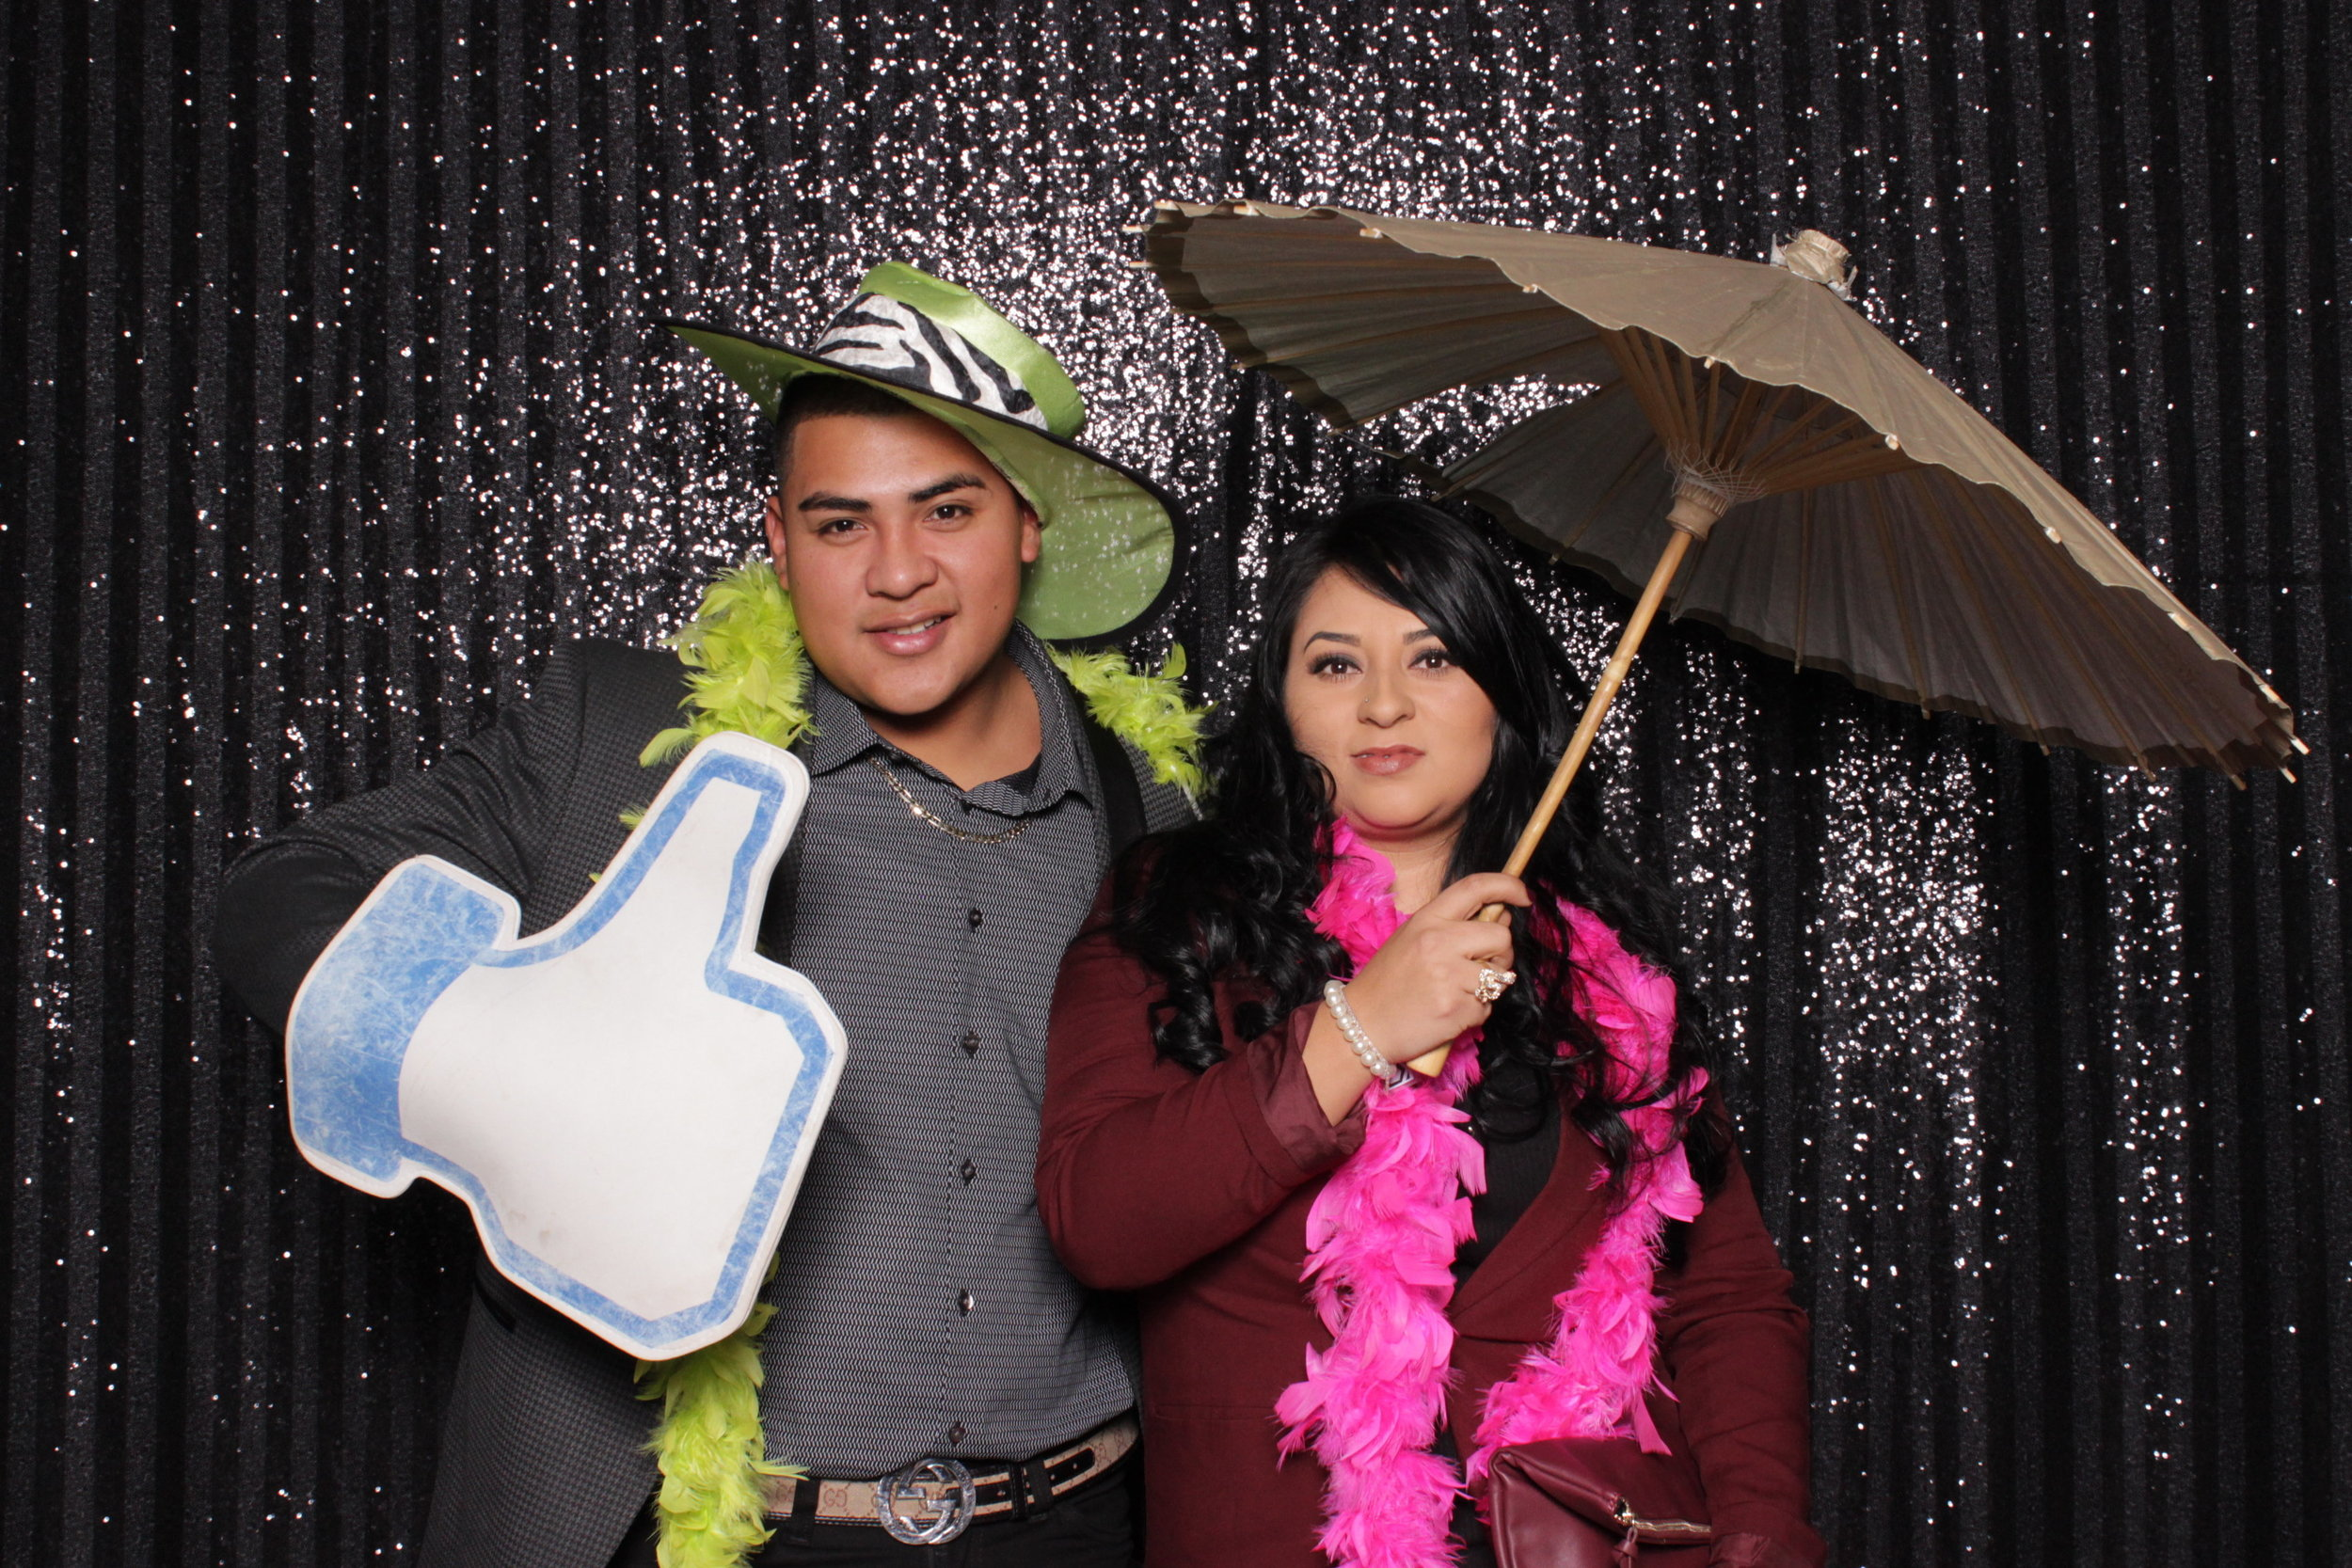 Chico-photo-booth-rental-smart